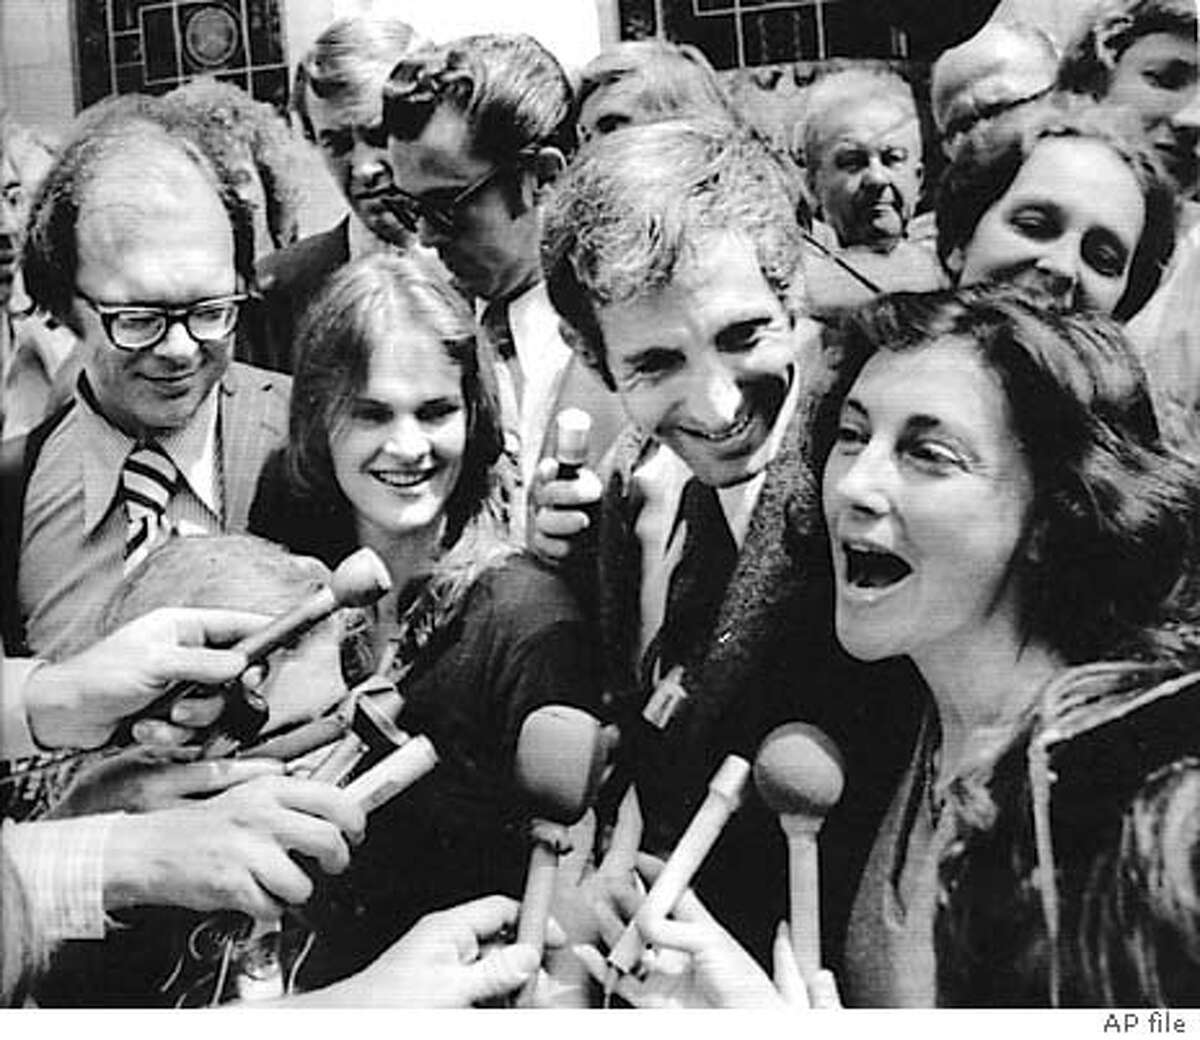 ANTHONY RUSSO, LEFT, AND DANIEL ELLSBERG, THE CO-DEFENDANTS IN THE LENGTHY PENTAGON PAPERS TIAL, TALK TO NEWSMEN WITH THEIR HAPPY WIVES OUTSIDE THE FEDERAL BUILDING IN LOS ANGELES FRIDAY AFTER ALL CHARGES AGAINST THEM WERE DISMISSED. RUSSO'S WIFE IS MS. KATHARINE BARKLEY, AND ELLSBERG'S WIFE IS PAT.